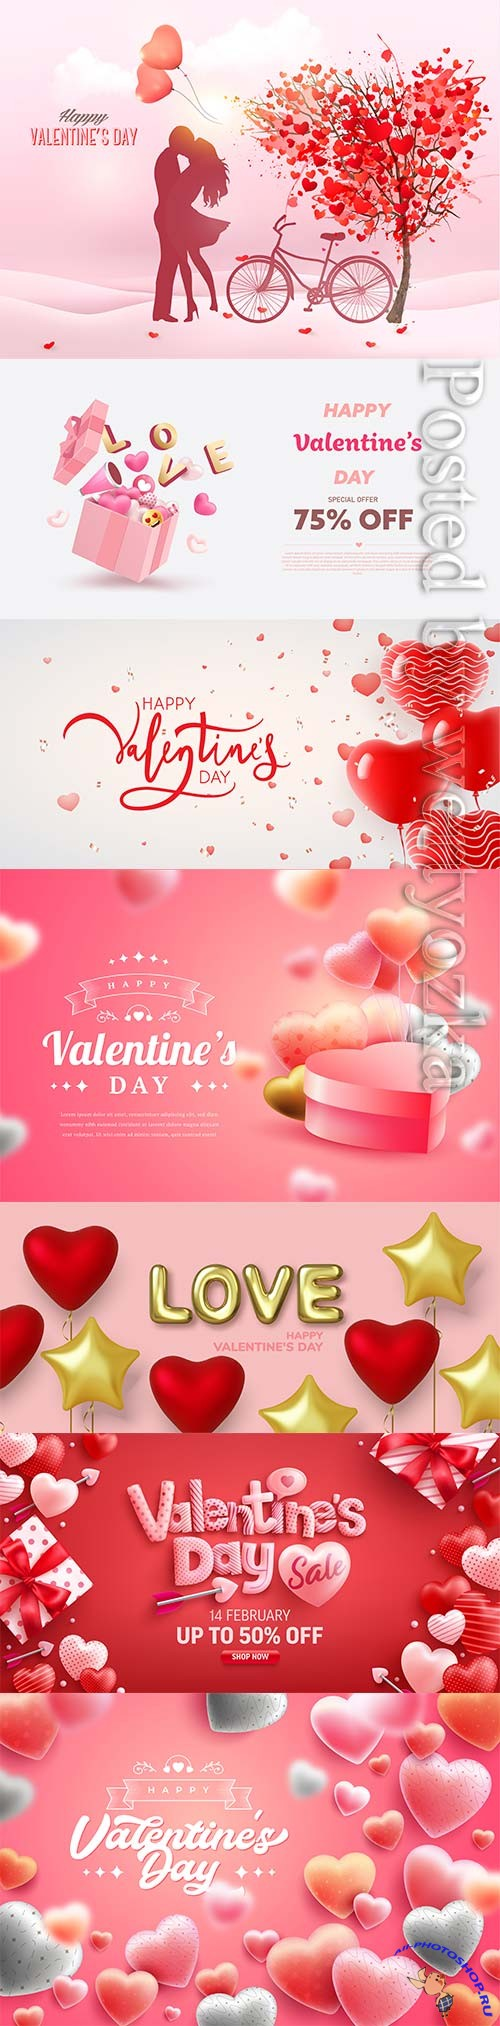 Happy valentines day in realistic 3d style